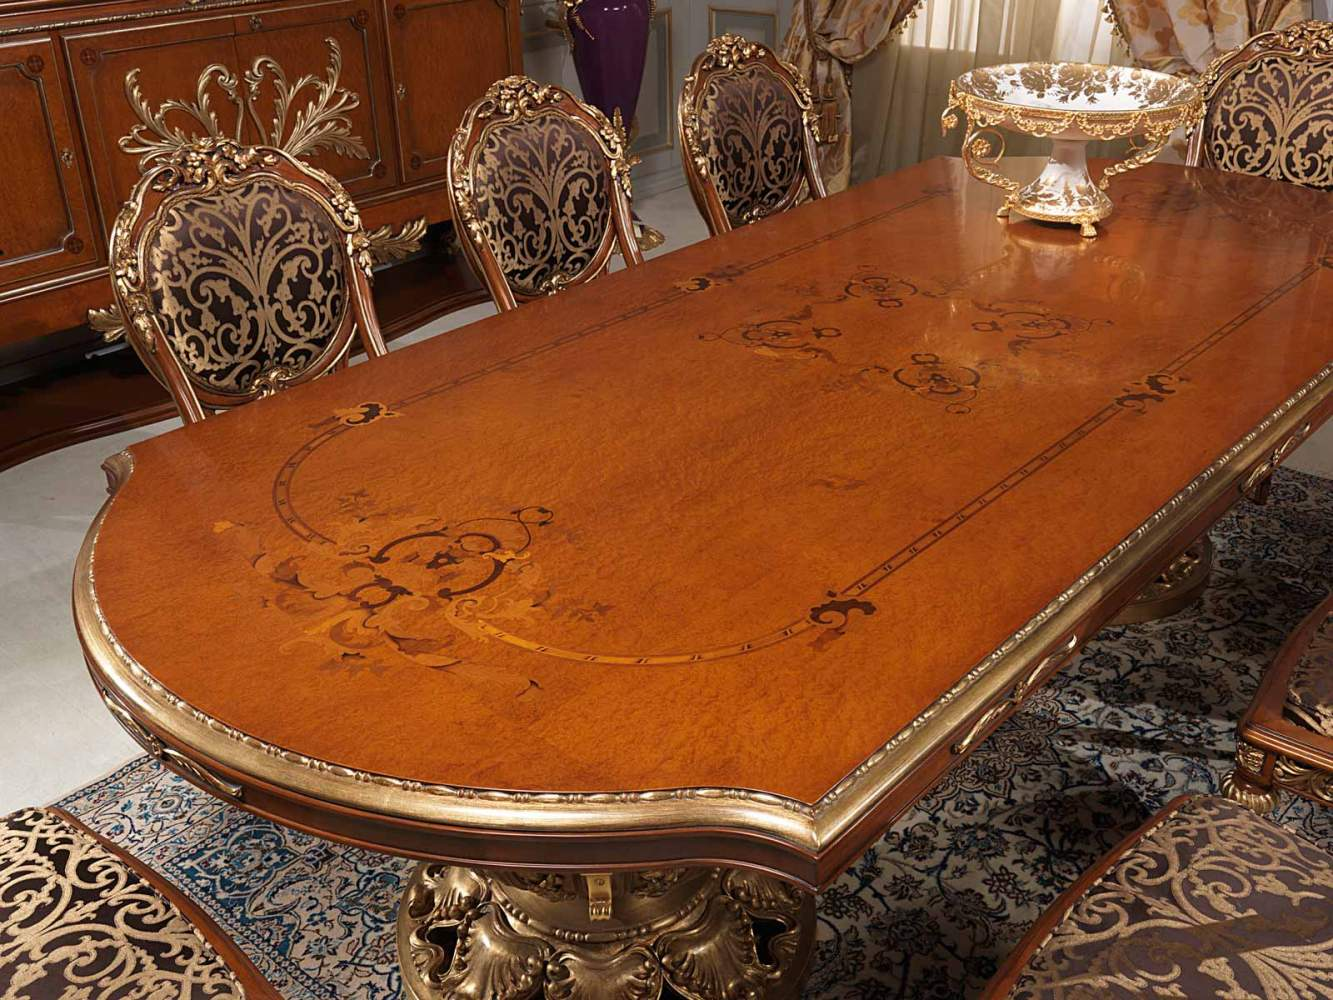 Carved and inlaid table in Louis XVI style